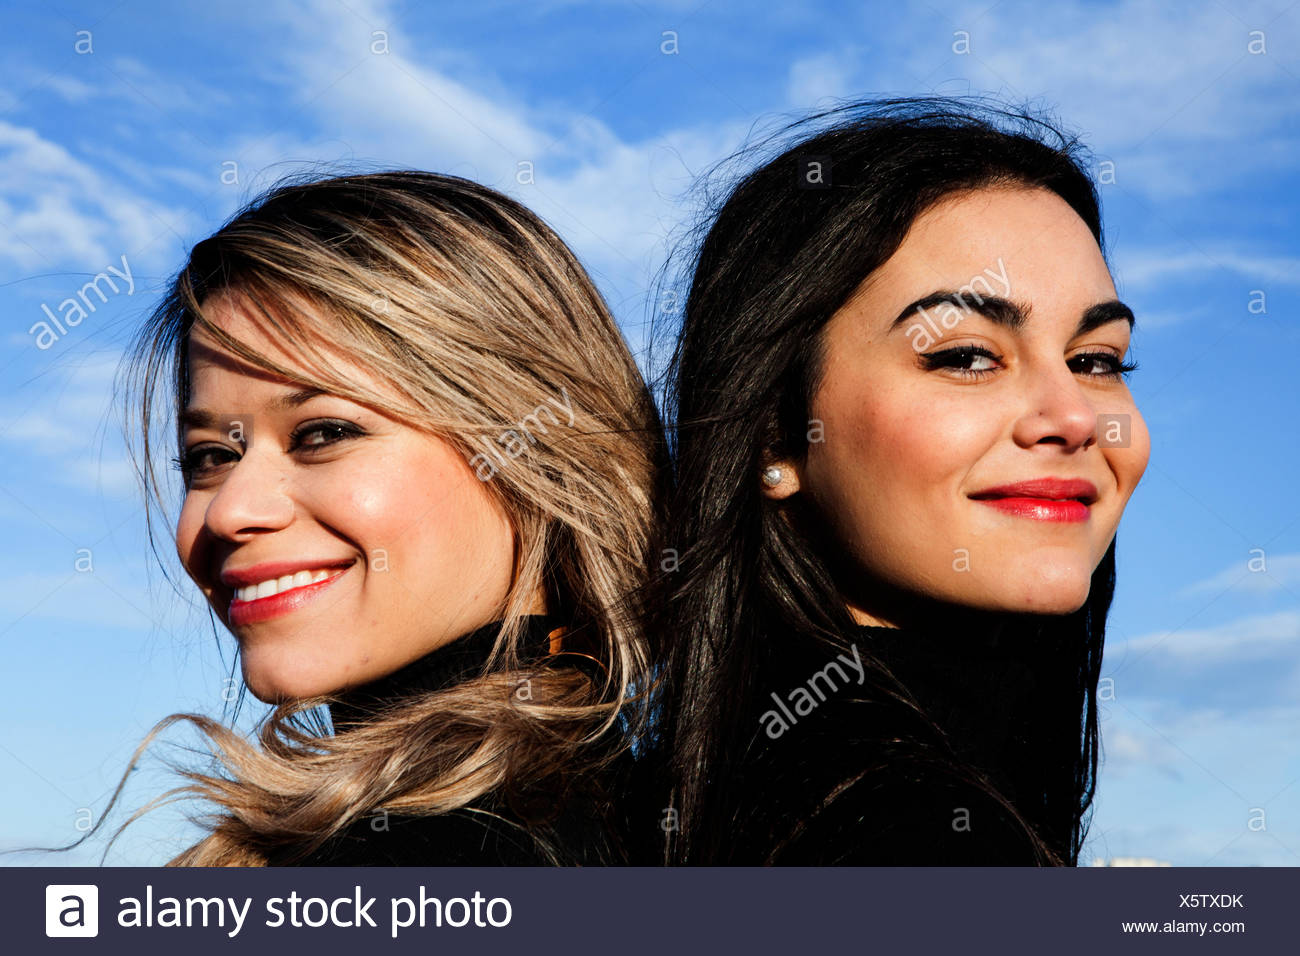 Portrait of two young women smiling - Stock Image